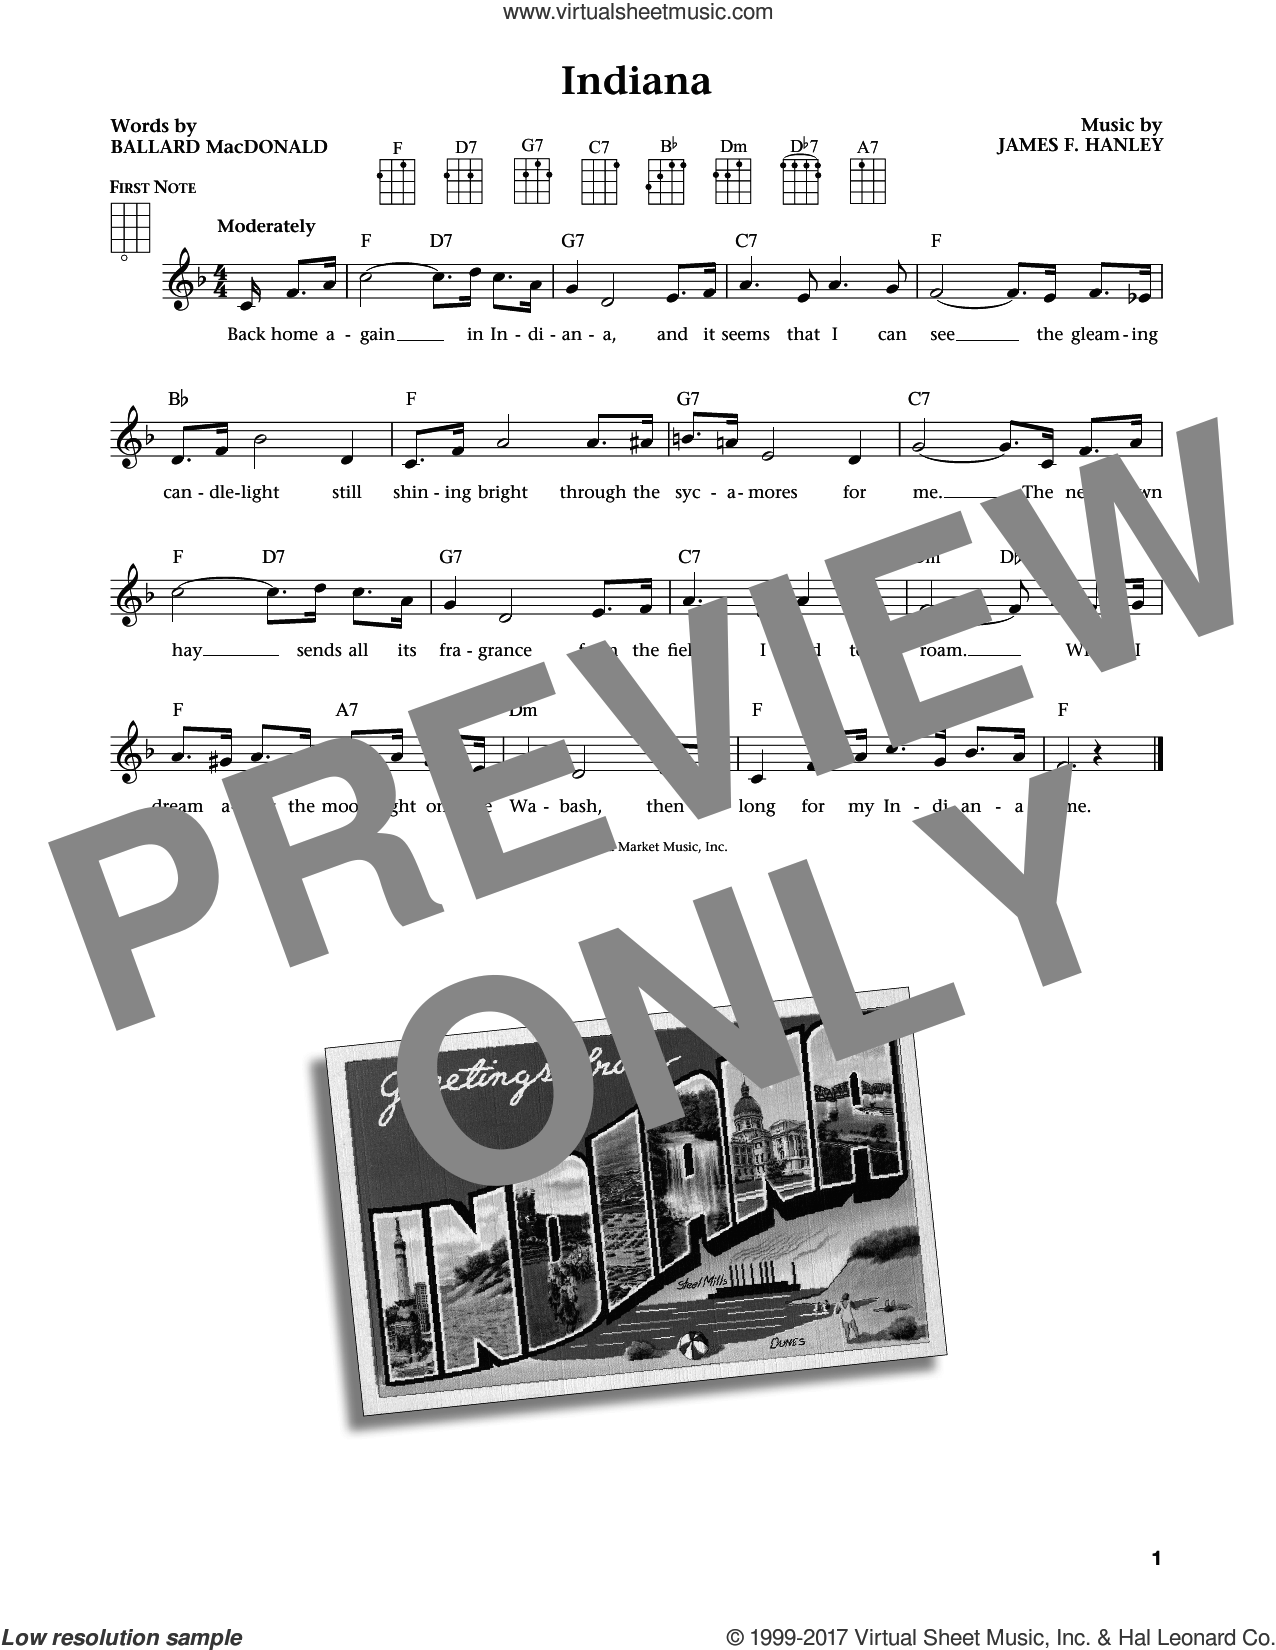 Indiana (Back Home Again In Indiana) (from The Daily Ukulele) (arr. Liz and Jim Beloff) sheet music for ukulele by Ballard MacDonald, Jim Beloff, Liz Beloff and James Hanley, intermediate skill level